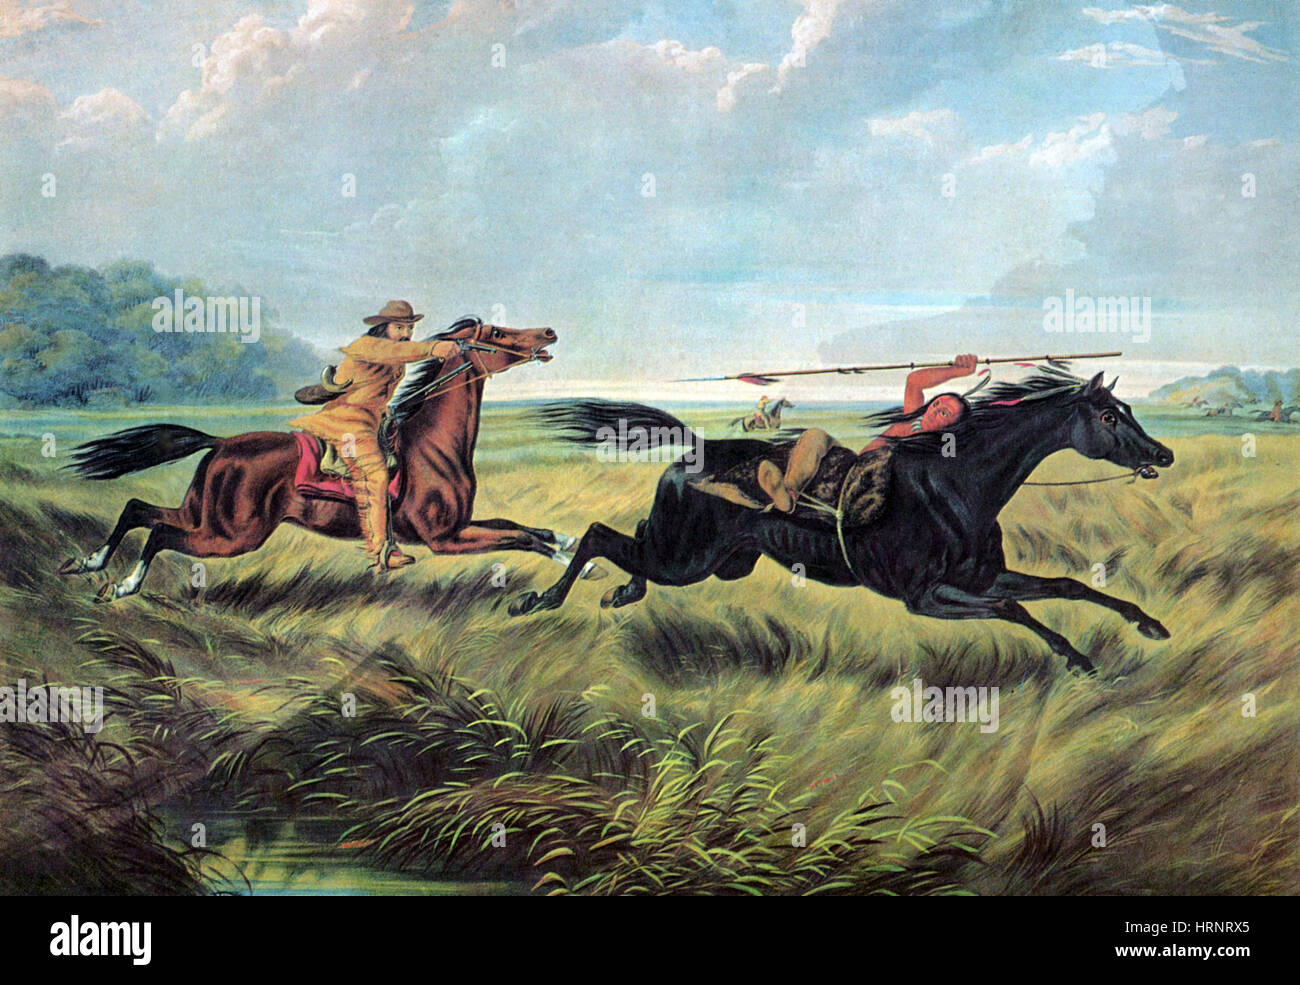 american expansion in the 19th century essay Read this essay on american imperialism in the 19th century come browse our large digital warehouse of free sample essays get the knowledge you need in order to pass your classes and more only at termpaperwarehousecom.